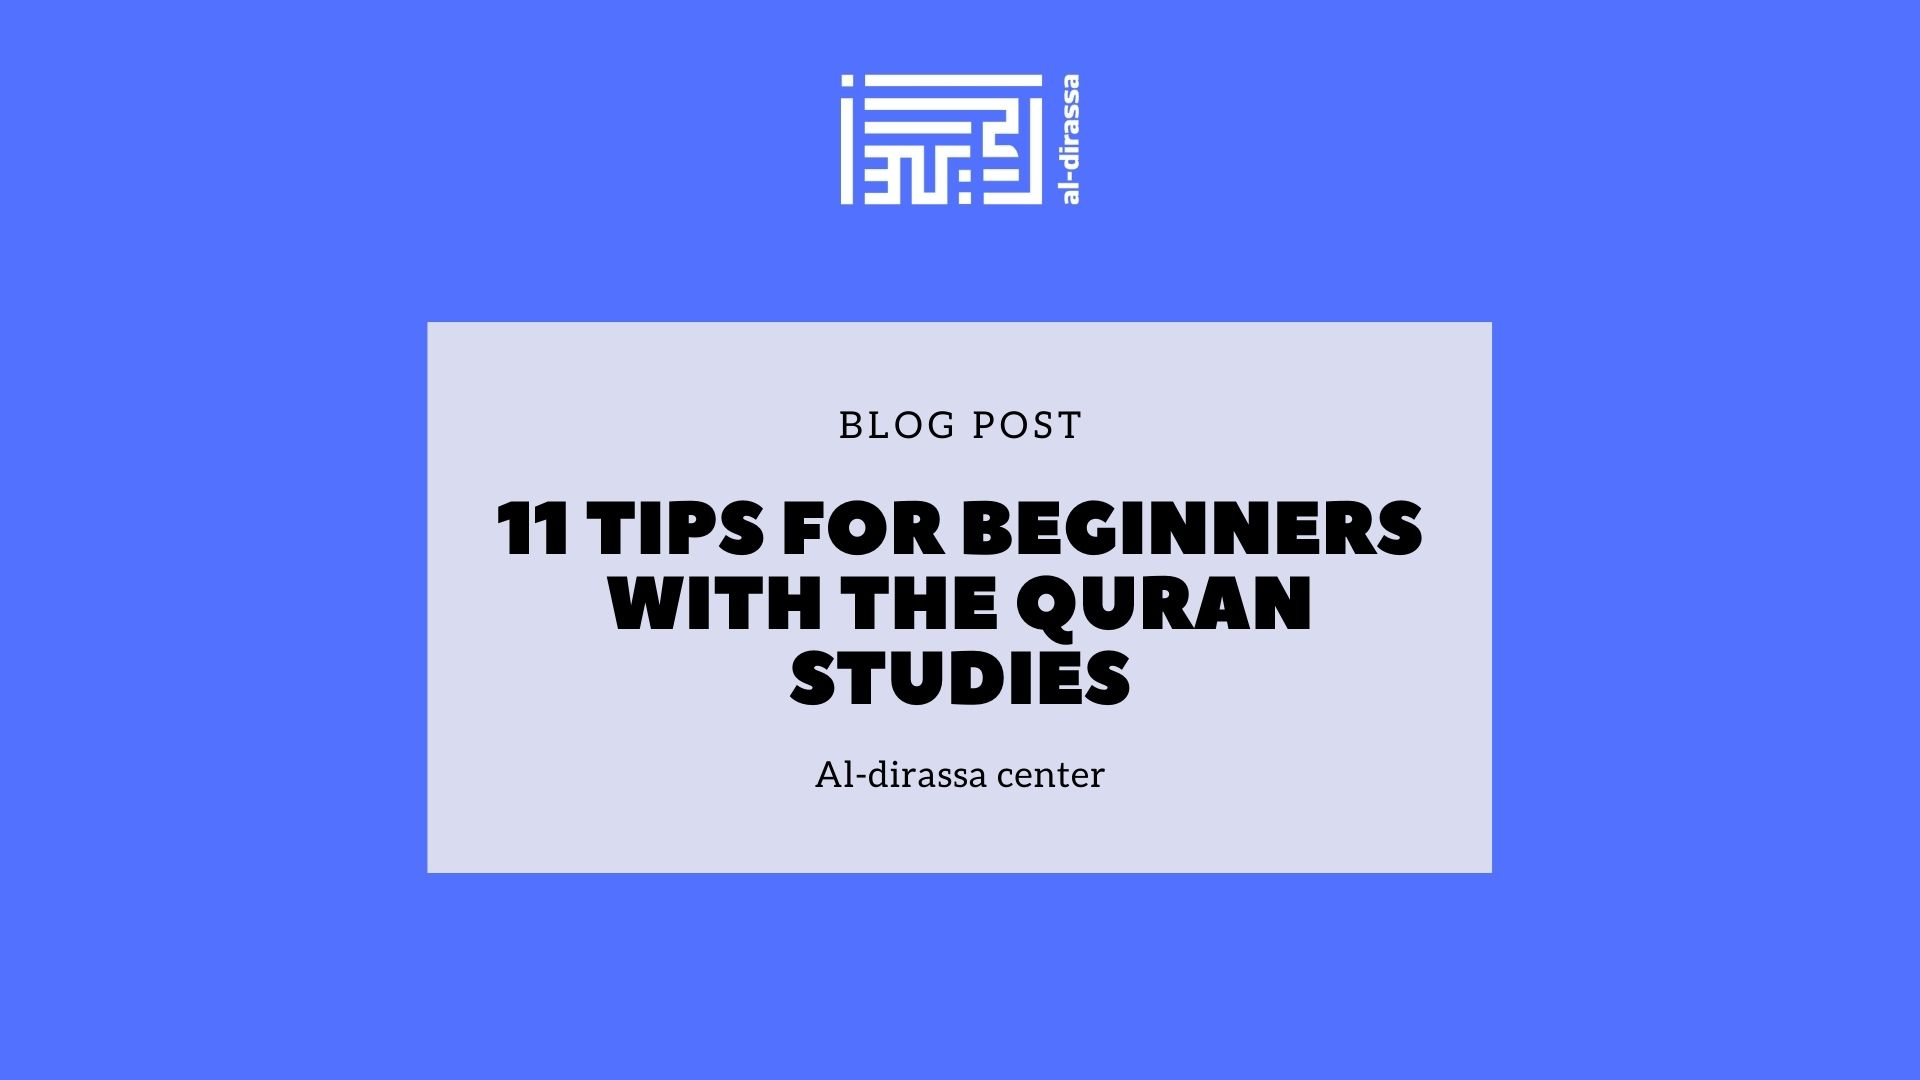 11 tips for beginners with the Quran studies